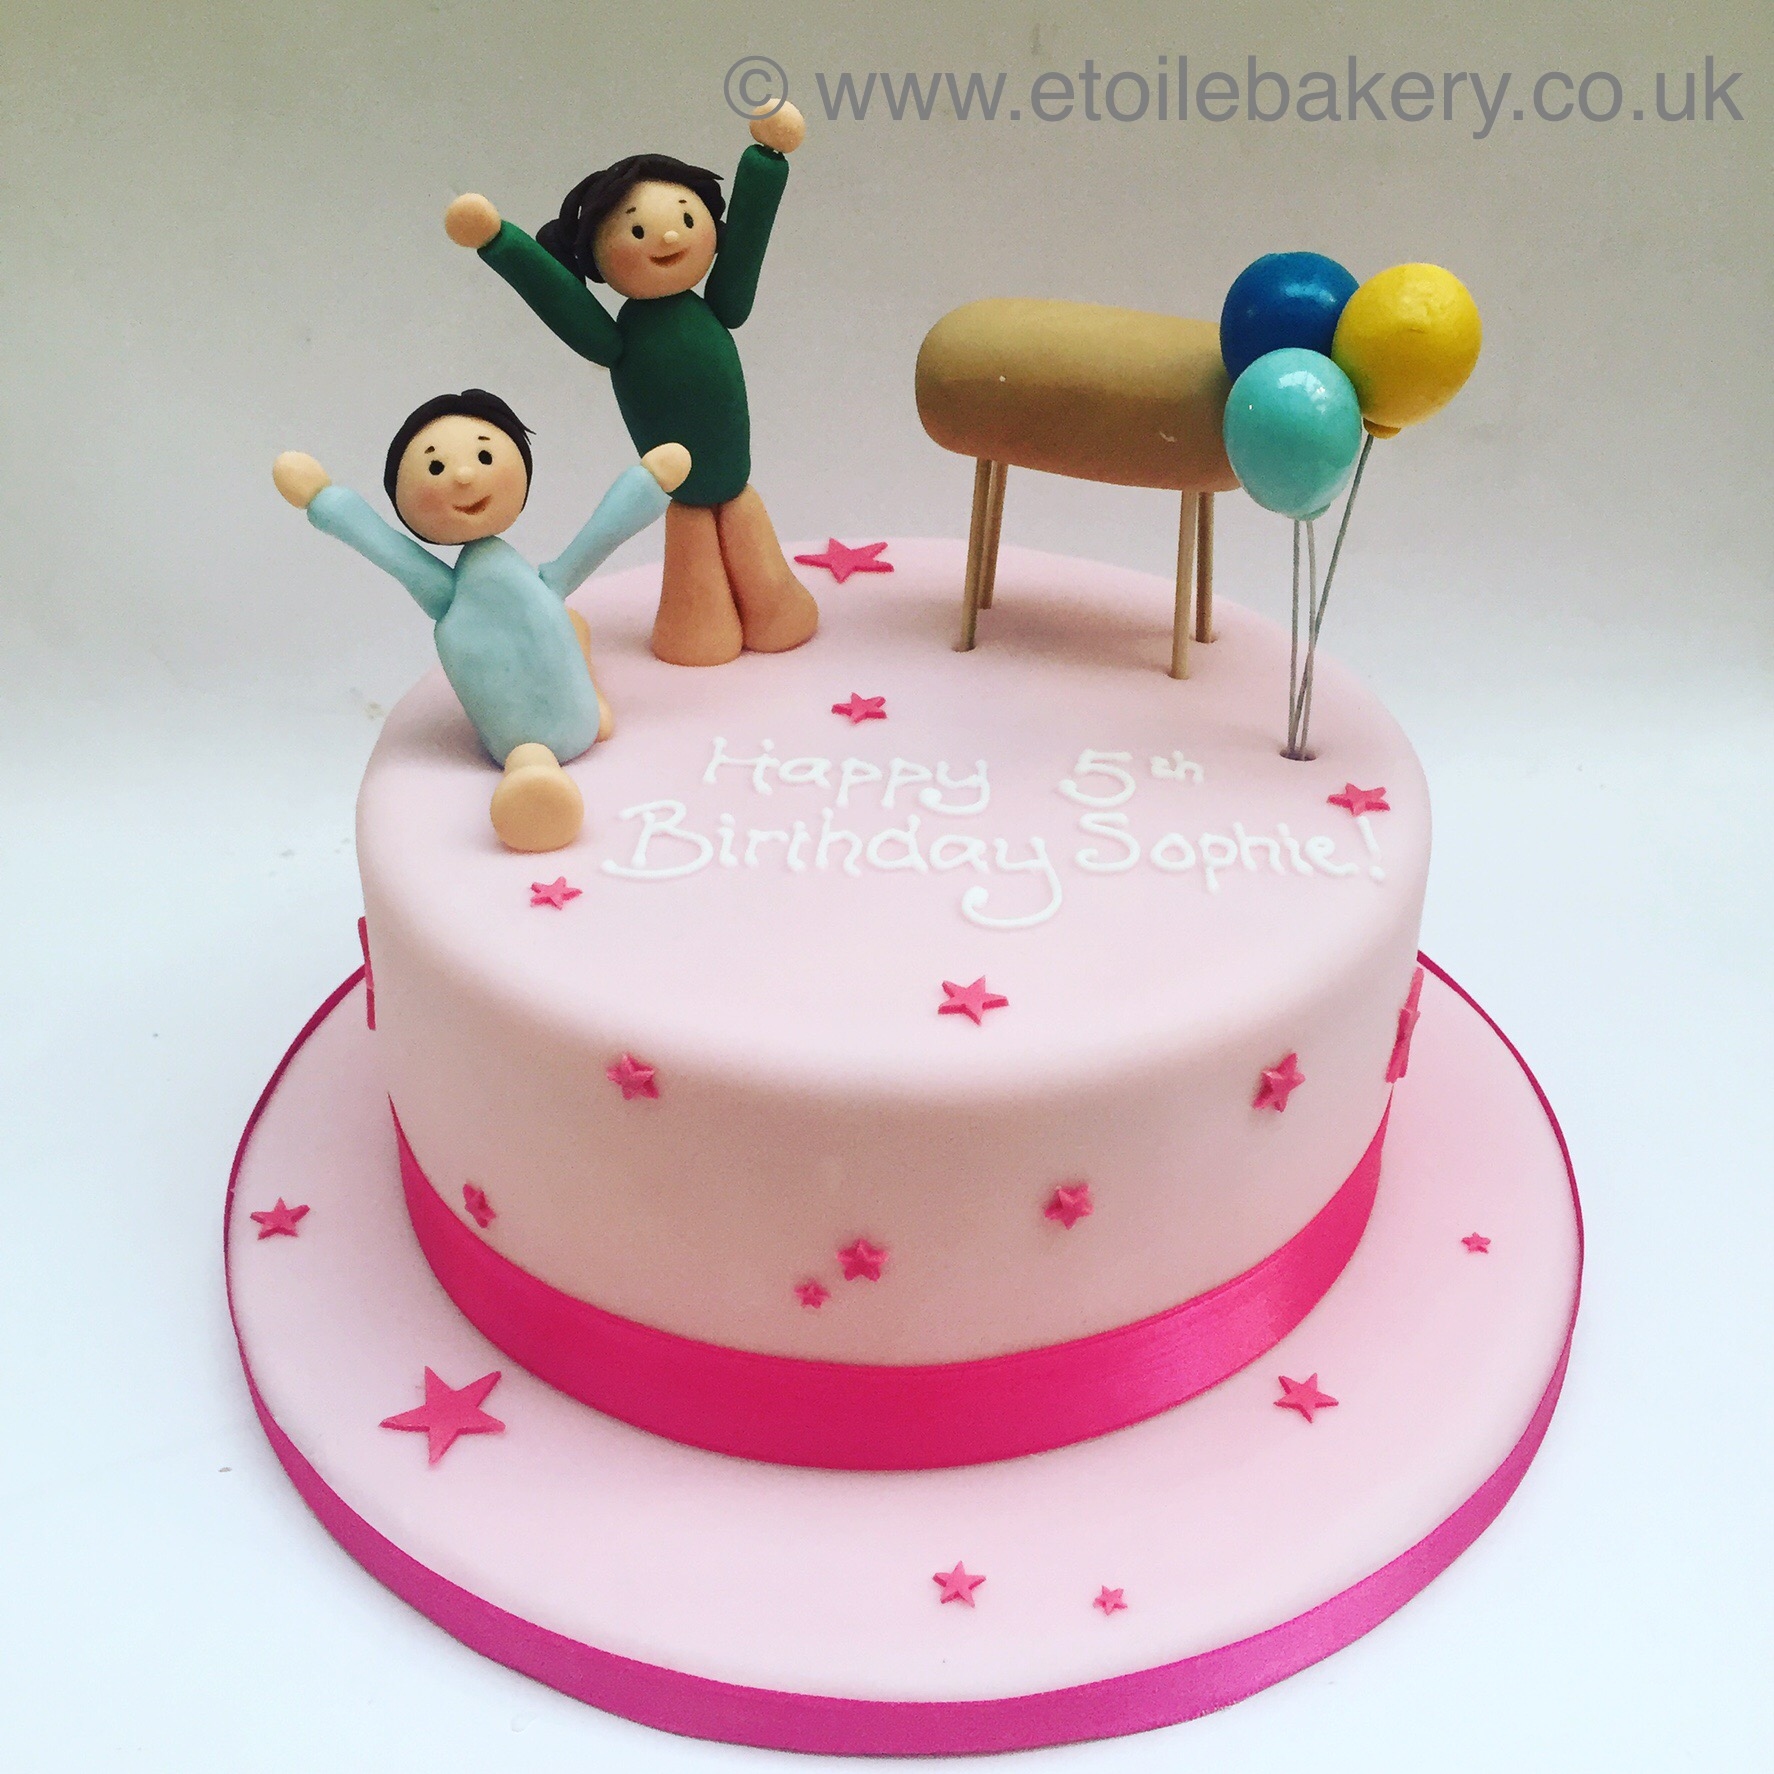 Amazing Gymnastics Birthday Cake Etoile Bakery Personalised Birthday Cards Bromeletsinfo